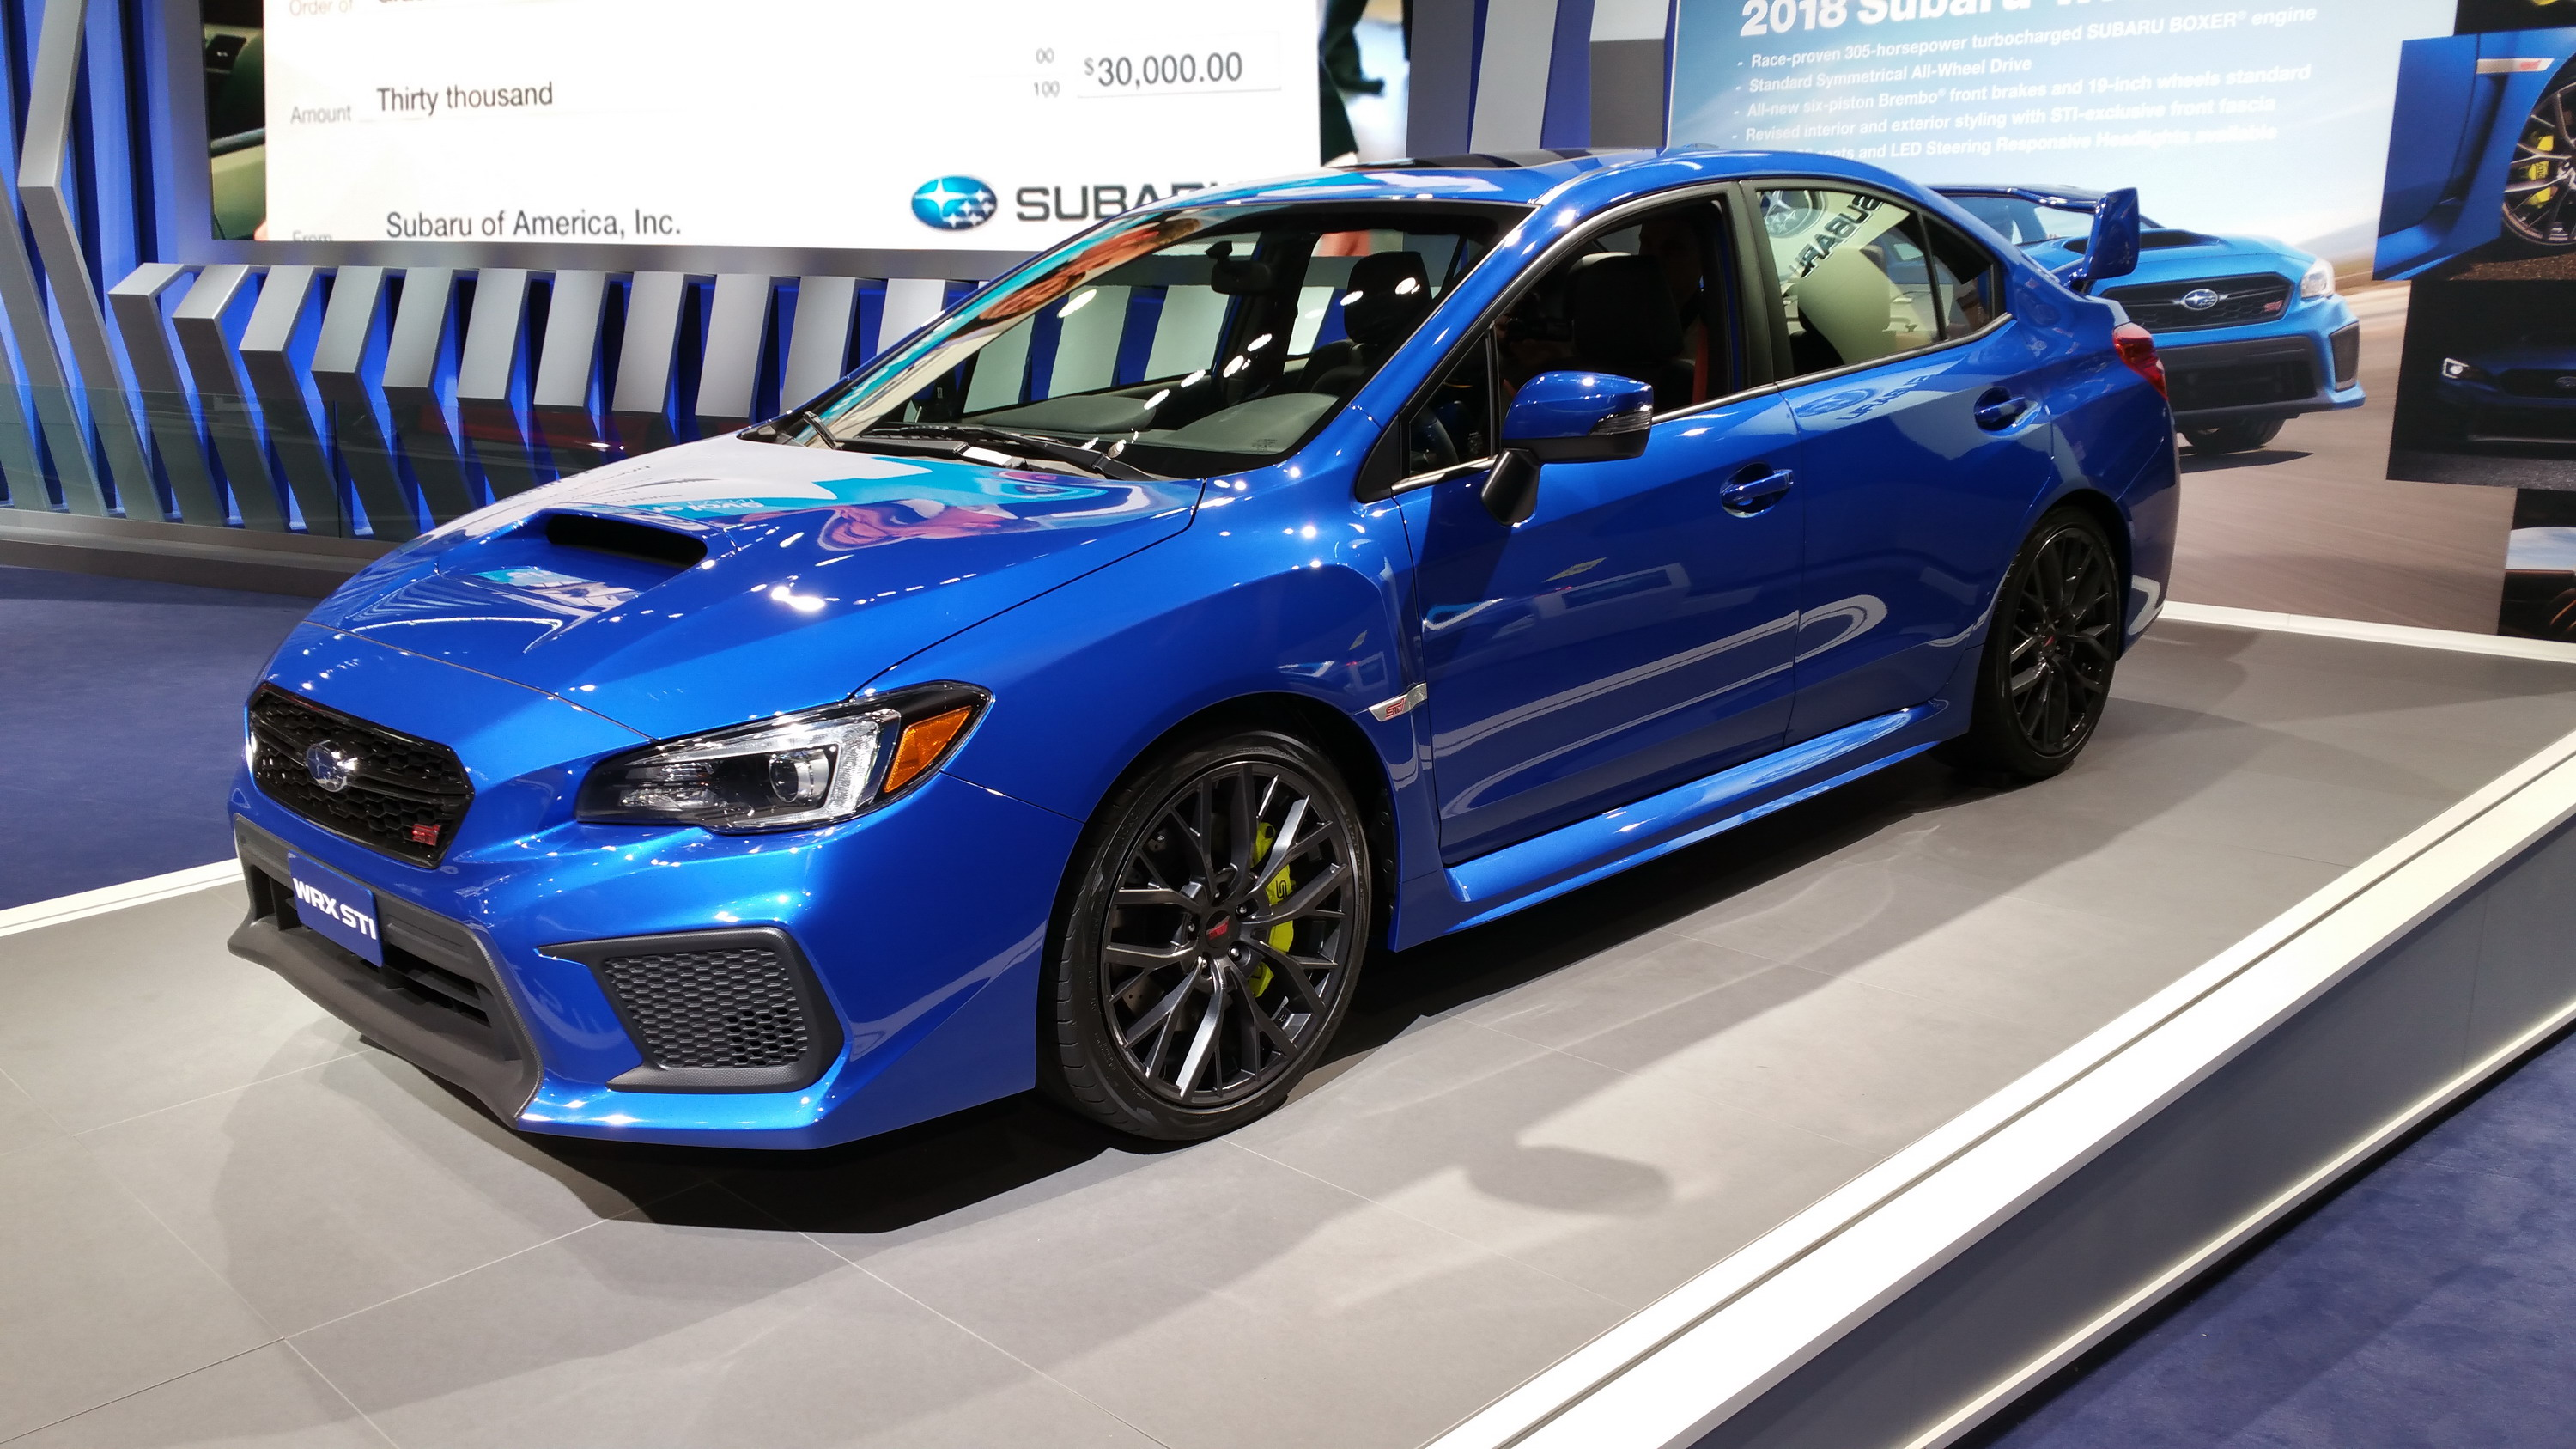 The Best Get Better As Upgrades Dominate Subaru WRX And STI